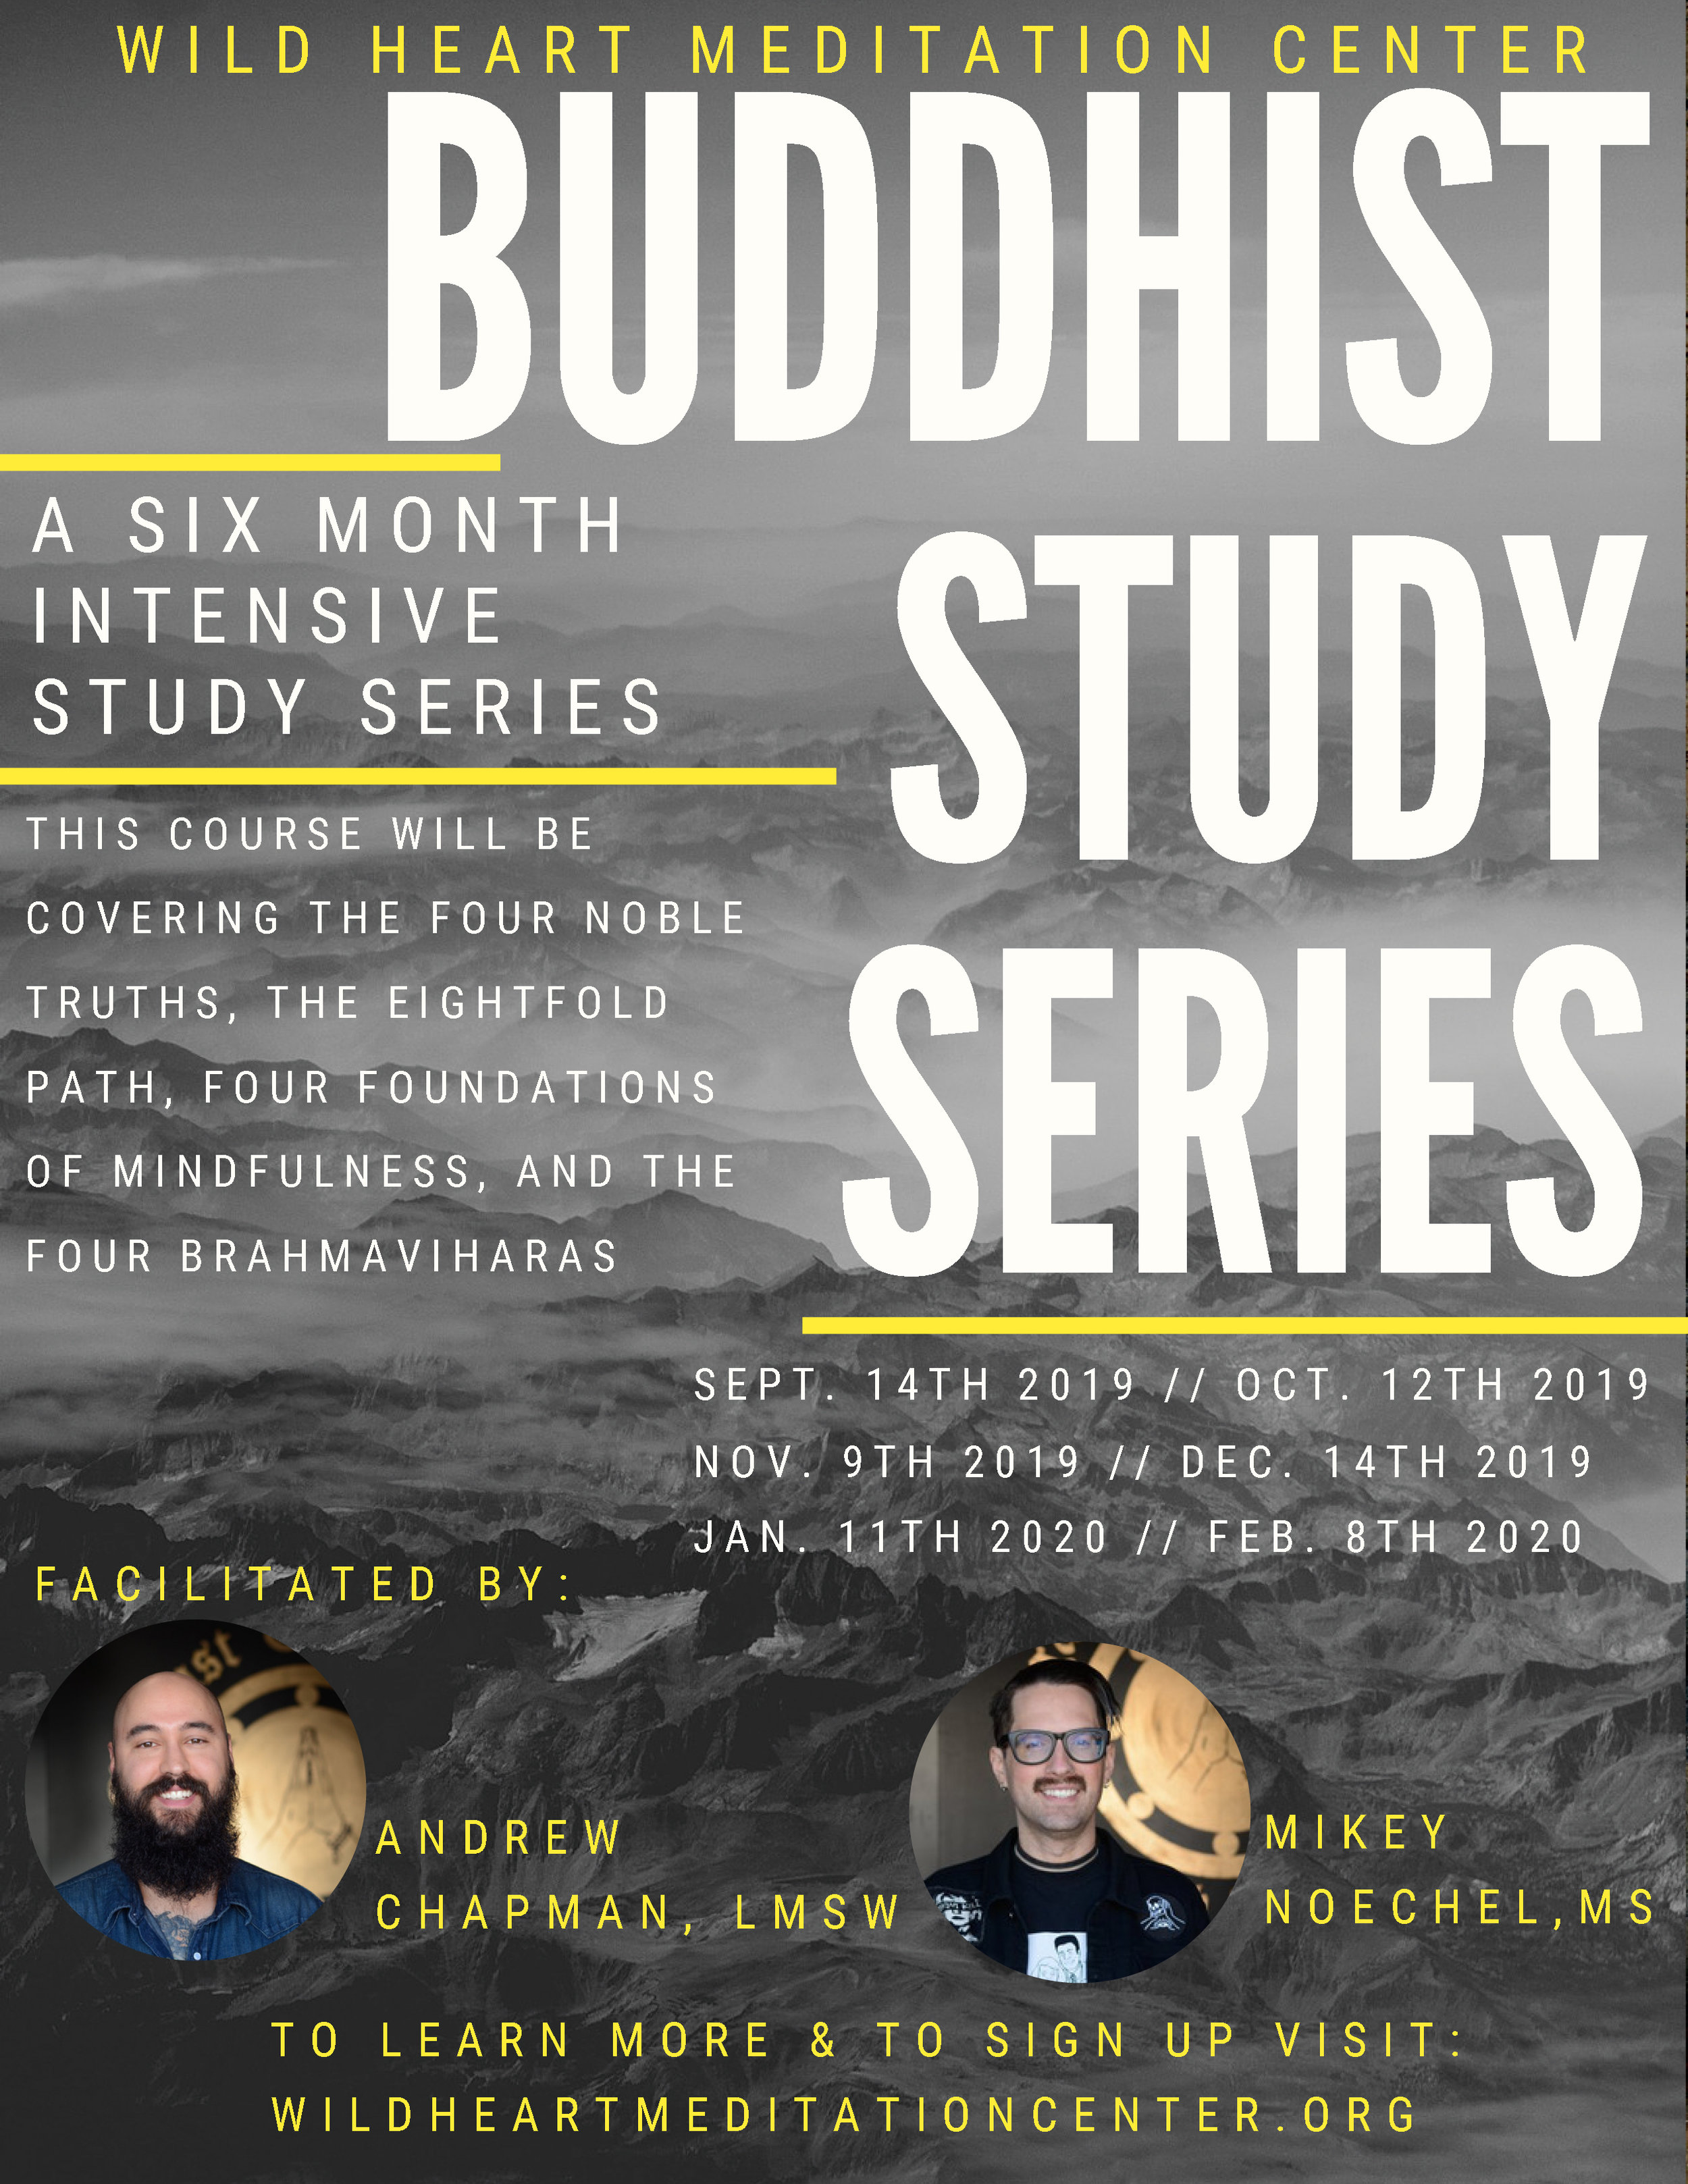 buddhist study series.jpg